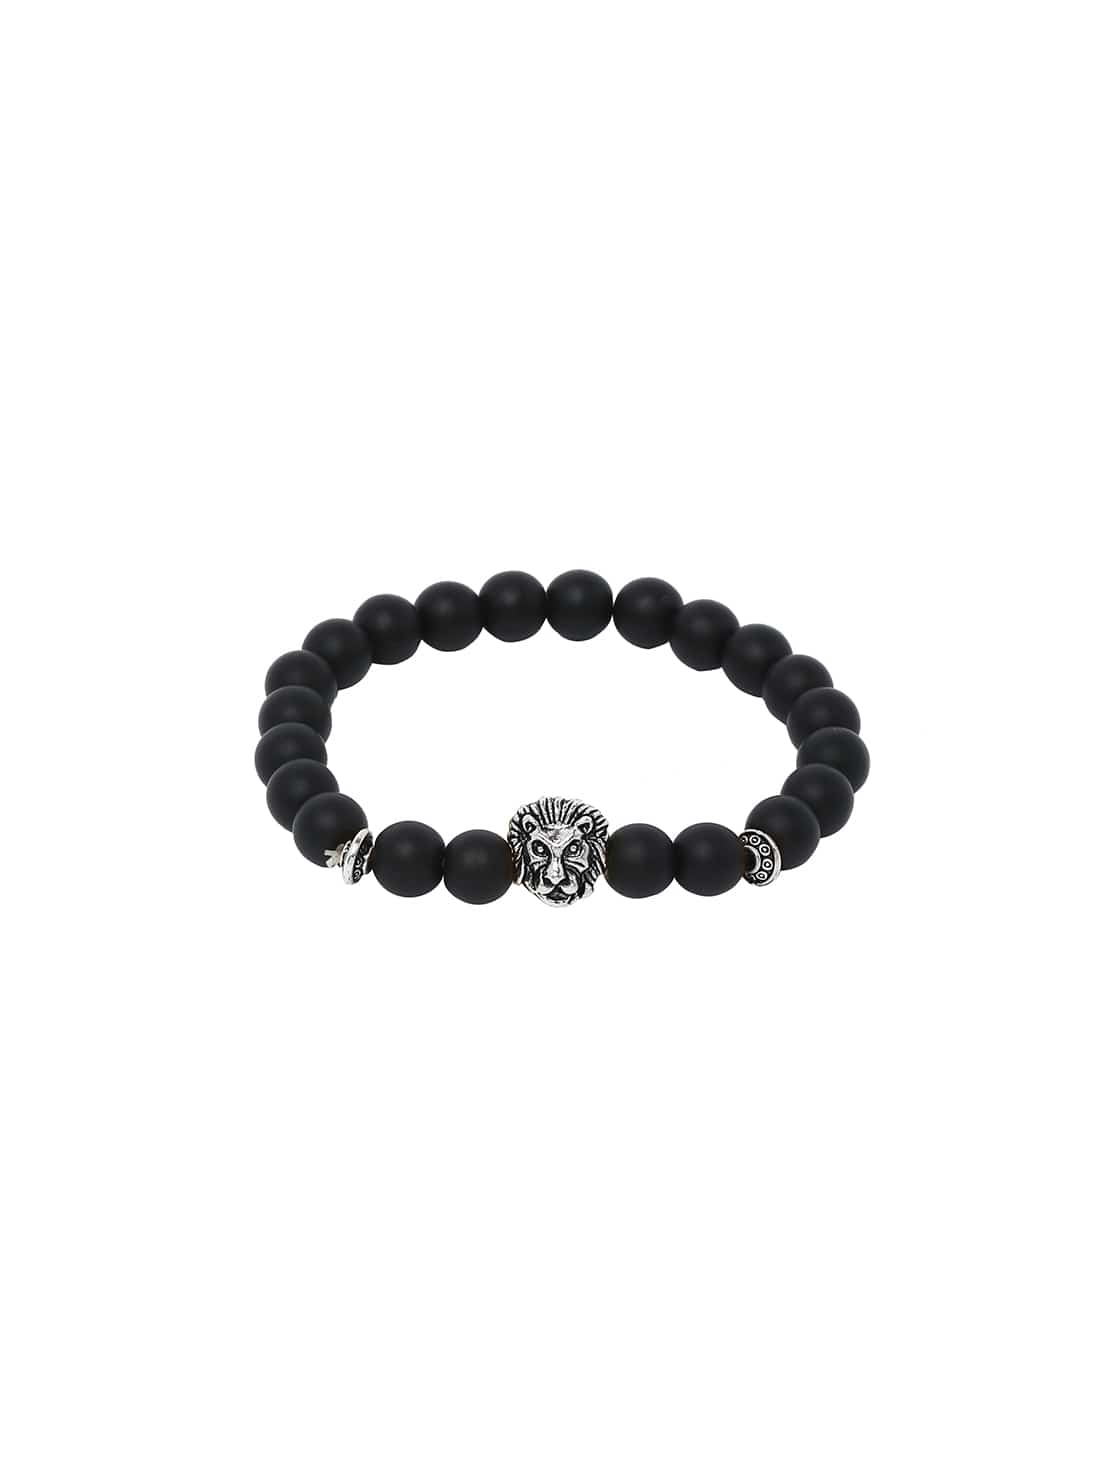 Obsidian With Silver Lionhead Polished BraceletObsidian With Silver Lionhead Polished Bracelet<br><br>color: Black<br>size: None